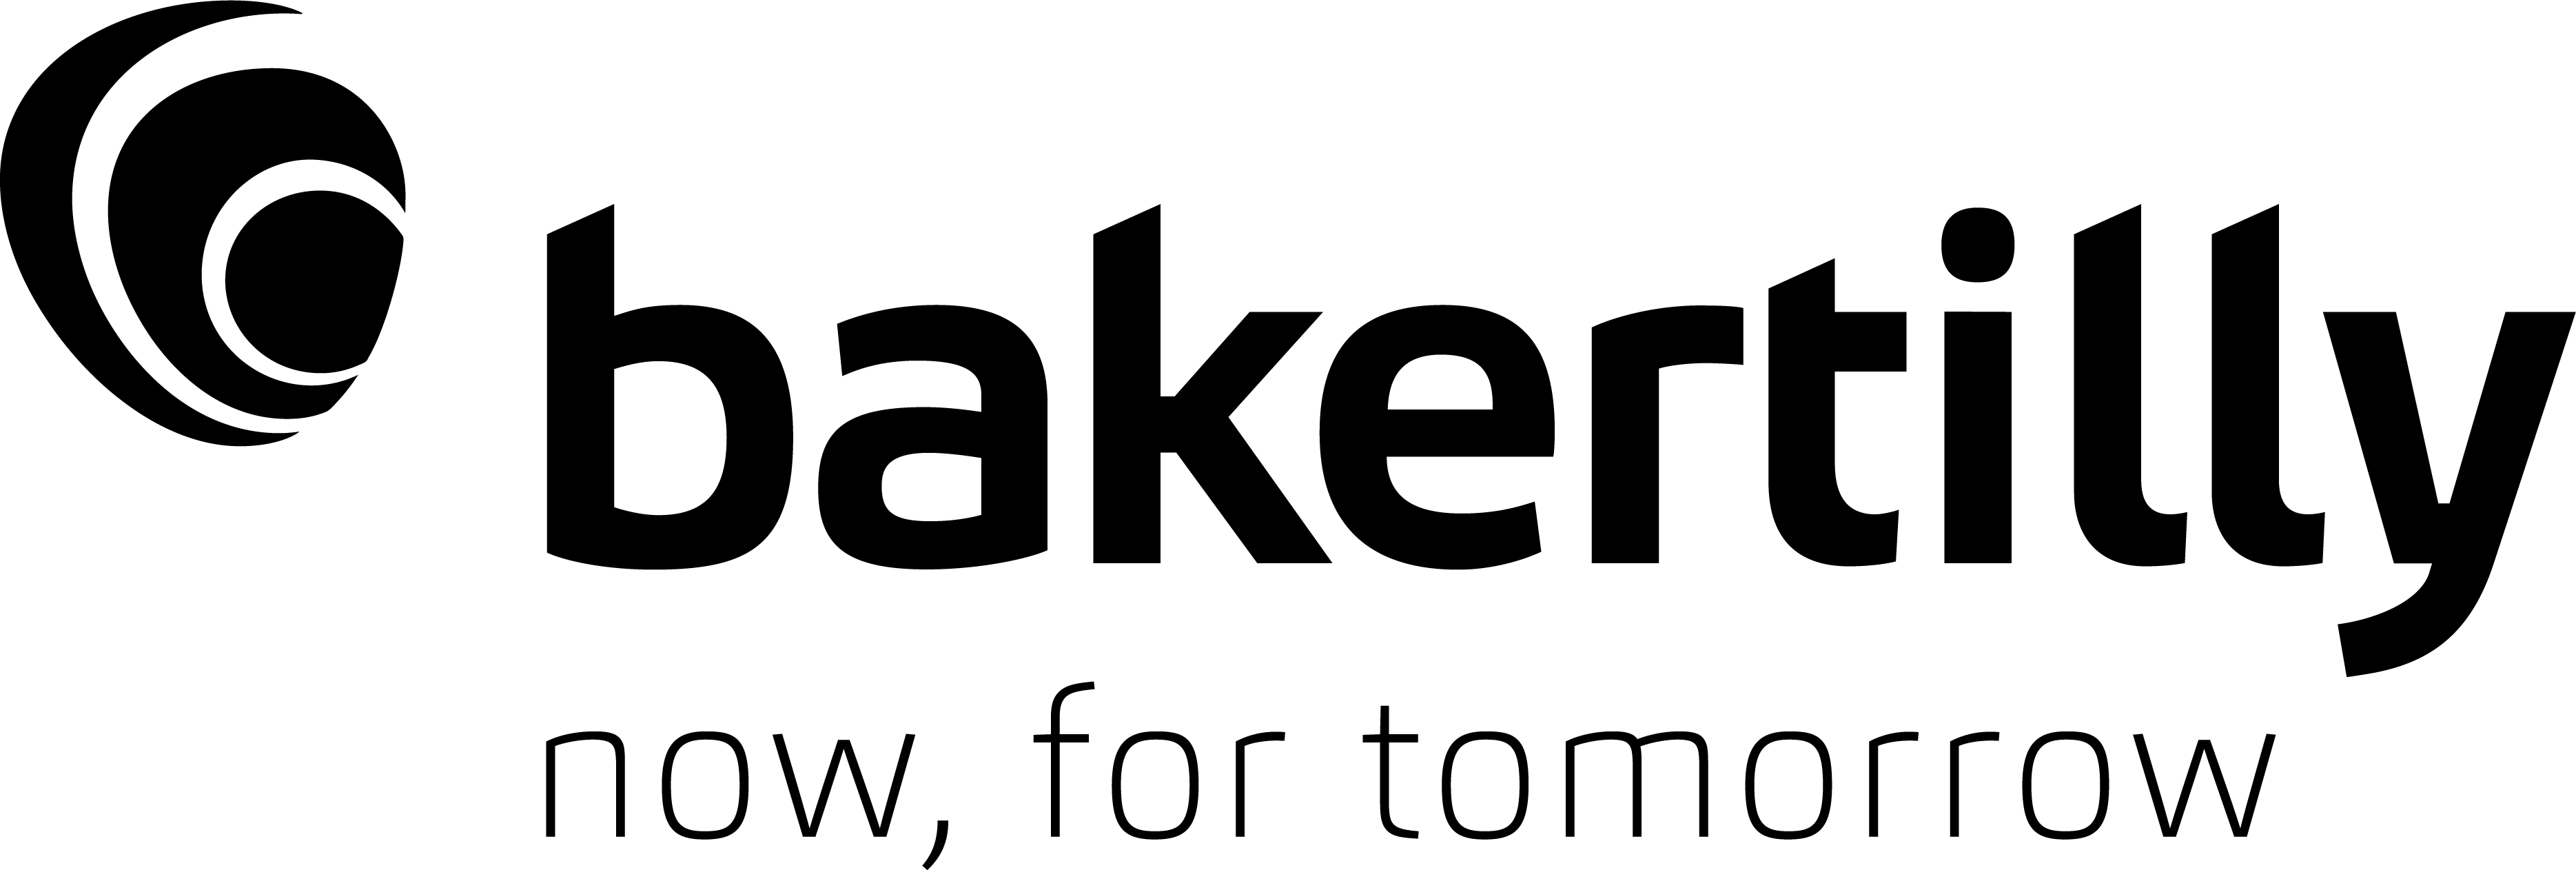 Baker Tilly Data Systems - C3PAO